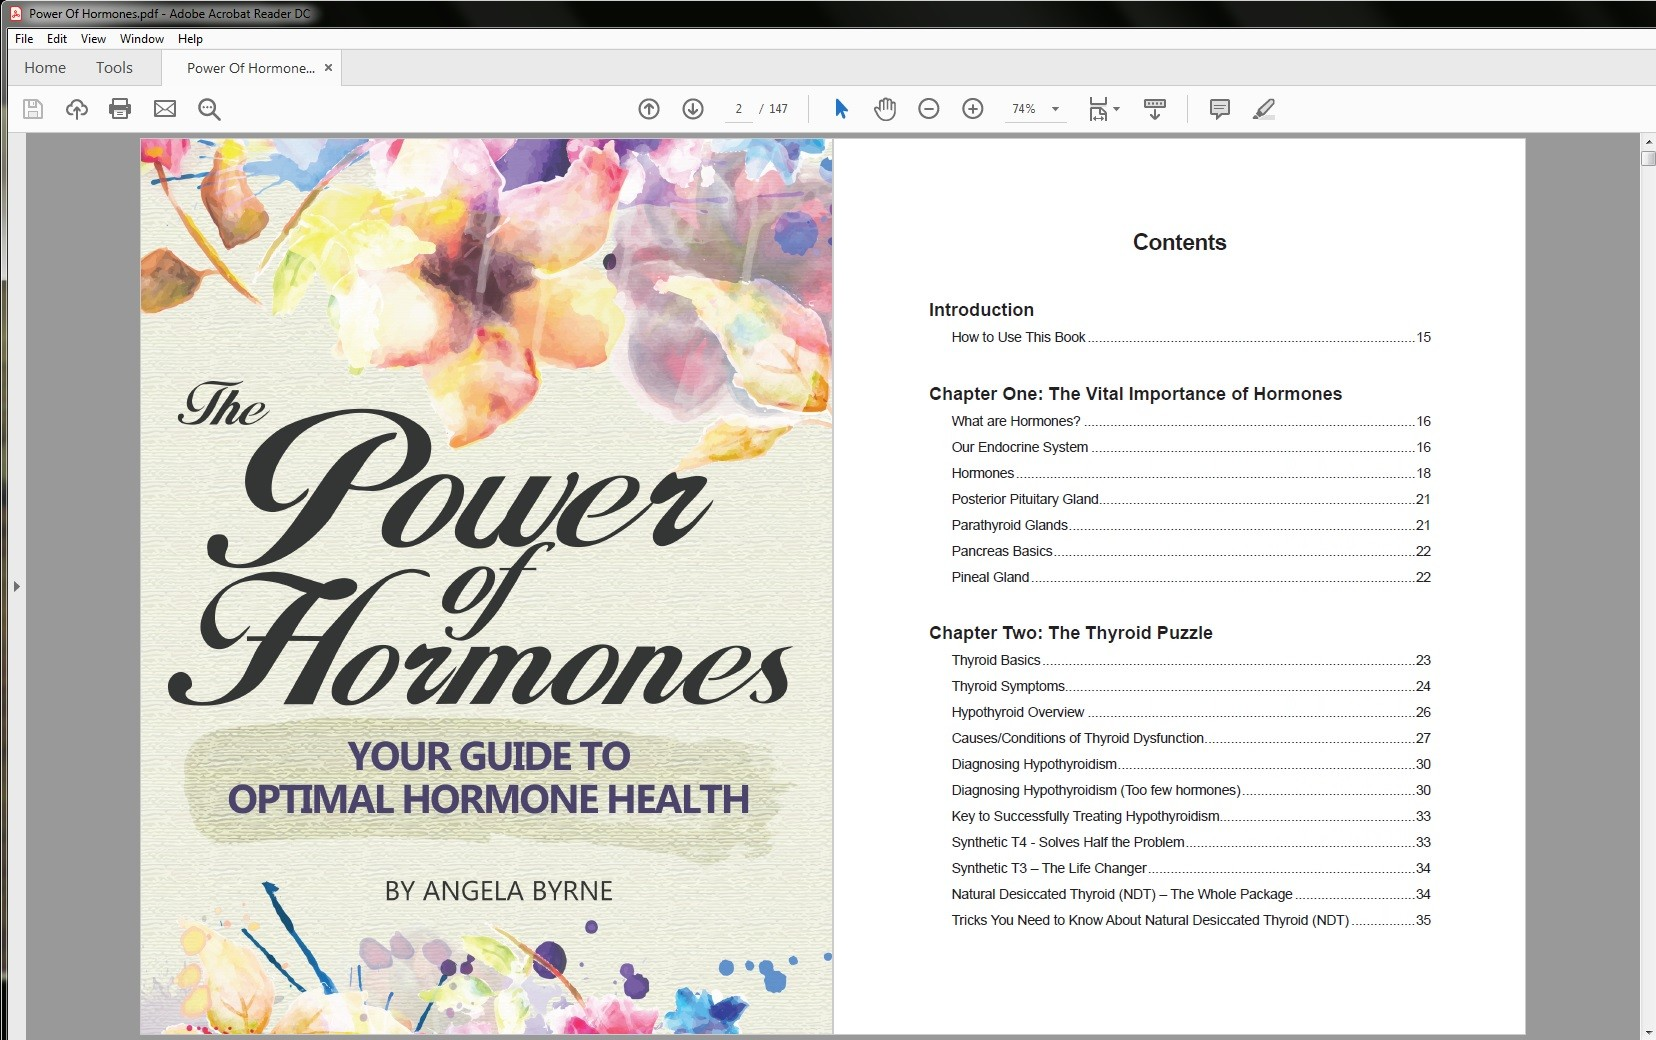 The Power of Hormones Table of Contents